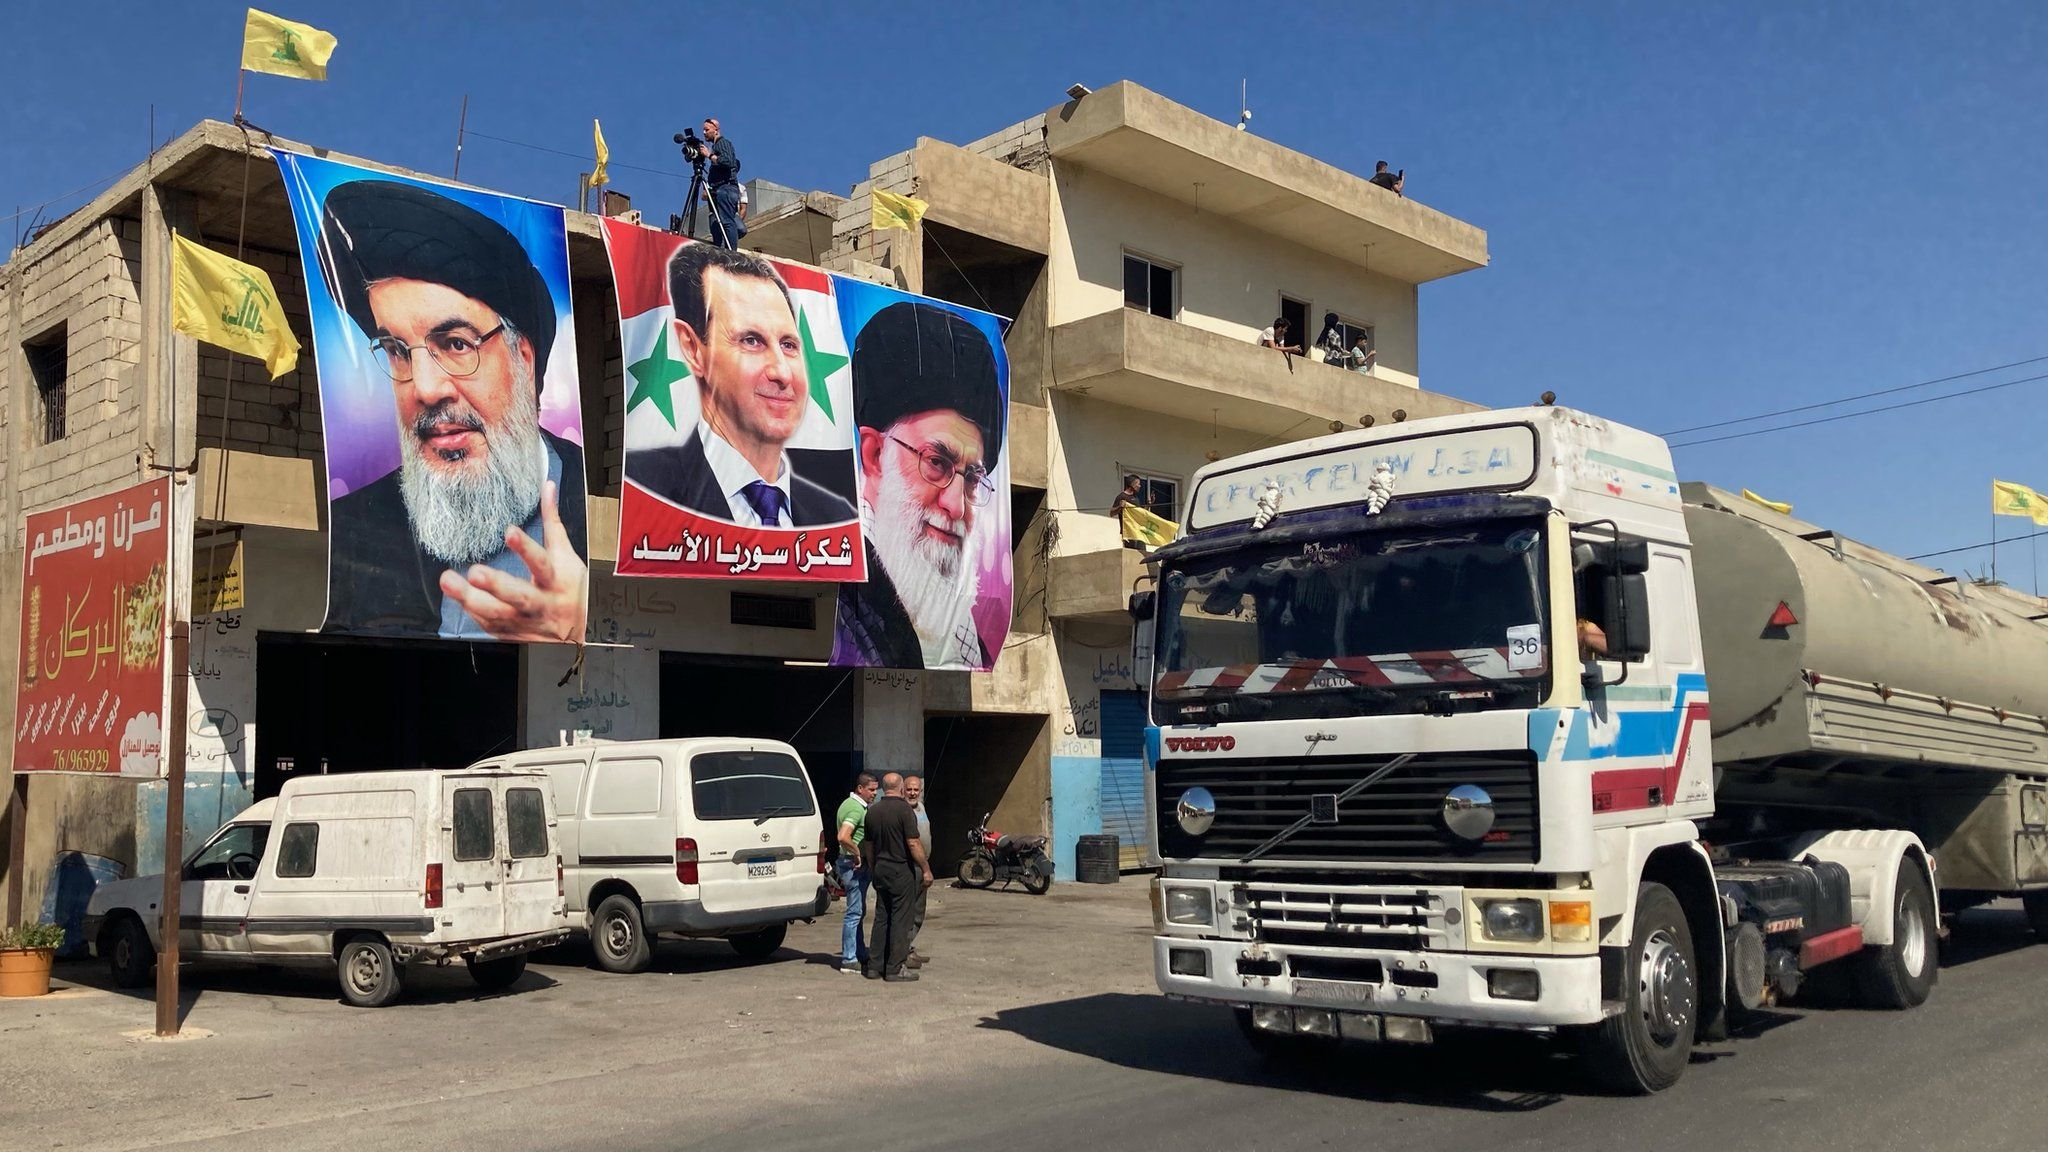 Posters of Hezbollah leader Hassan Nasrallah, Syrian President Bashar al-Assad and Iranian Supreme Leader Ali Khamenei on a building in al-Ain, as lorries bring Iranian fuel from Syria into Lebanon (16 September 2021)